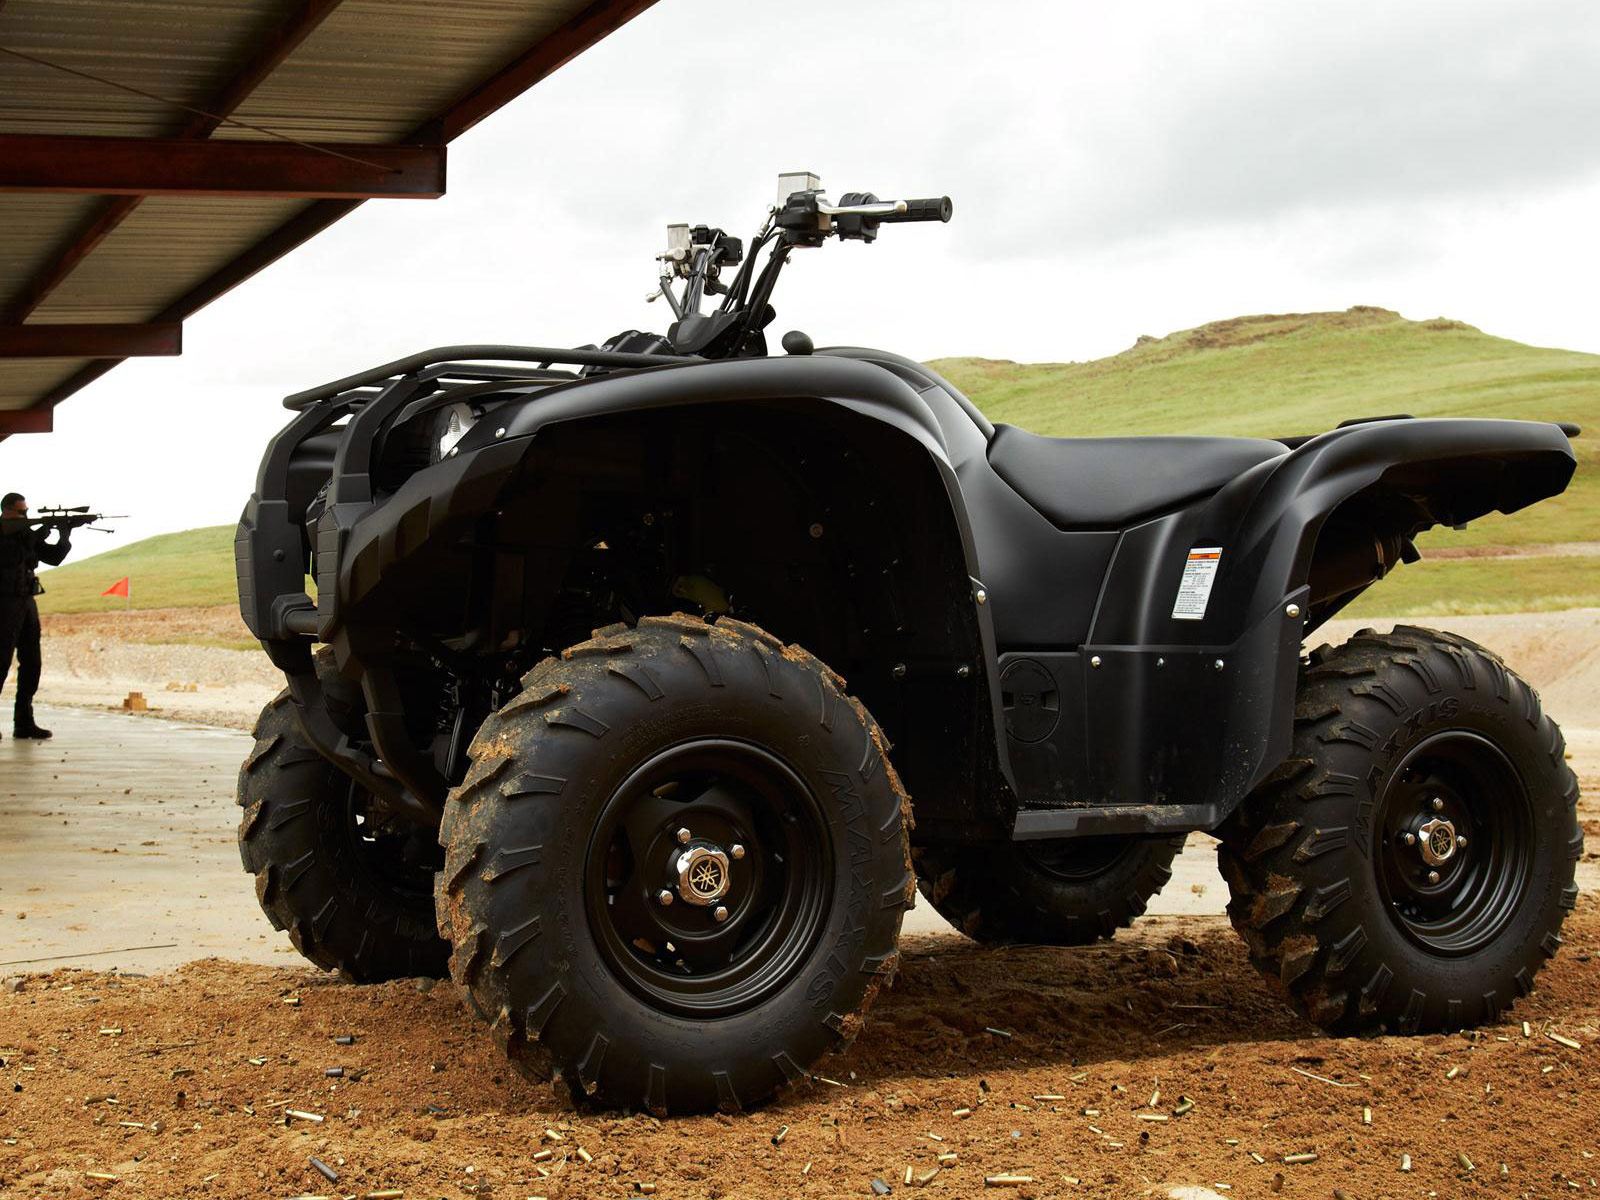 2013 yamaha grizzly 700 fi auto 4x4 eps se review photos for Yamaha grizzly 4x4